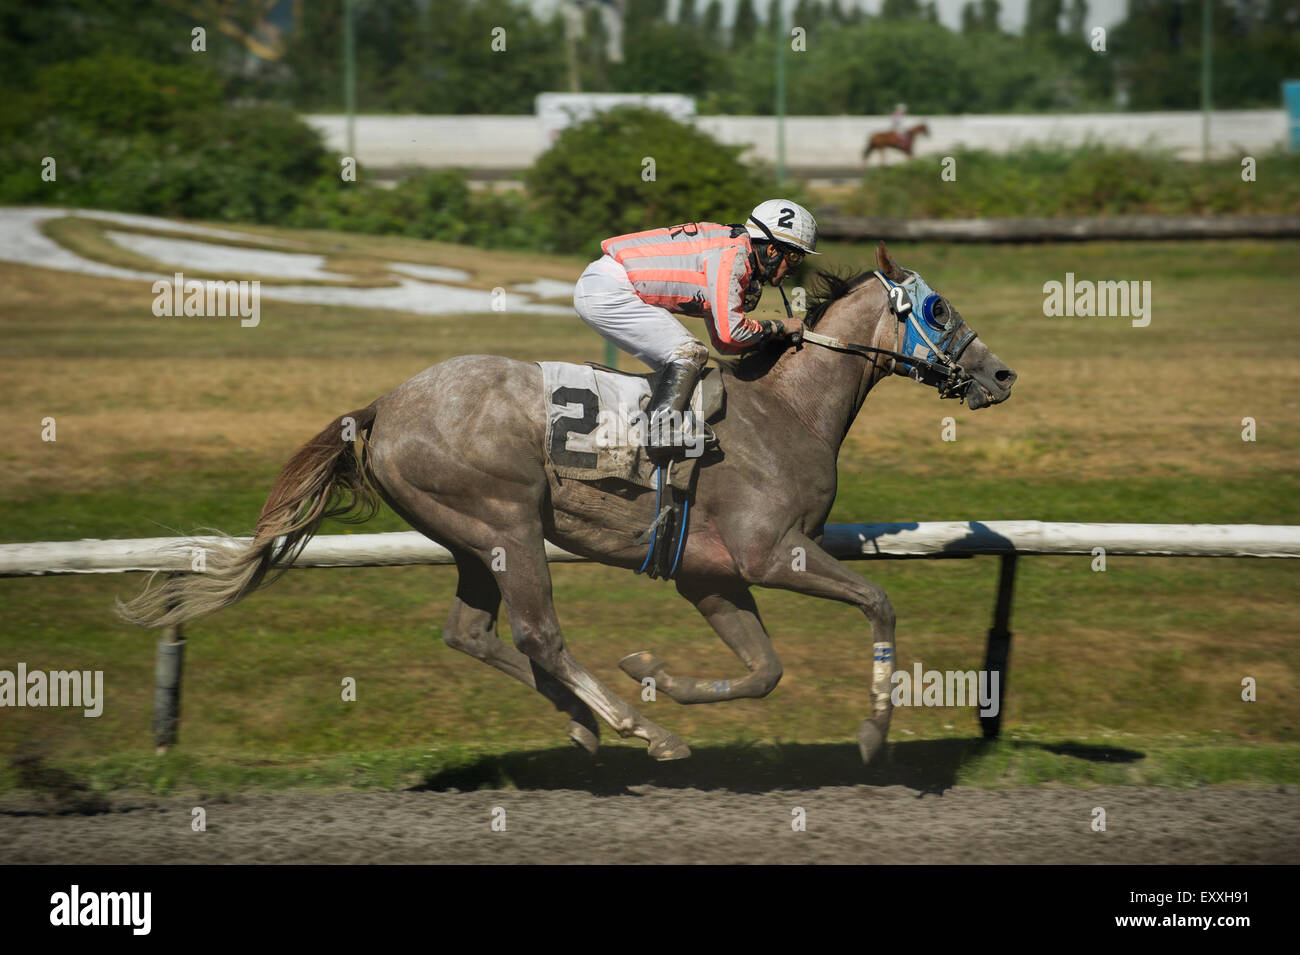 Jockey racing at Vancouver Hastings Exhibition Park race track. - Stock Image